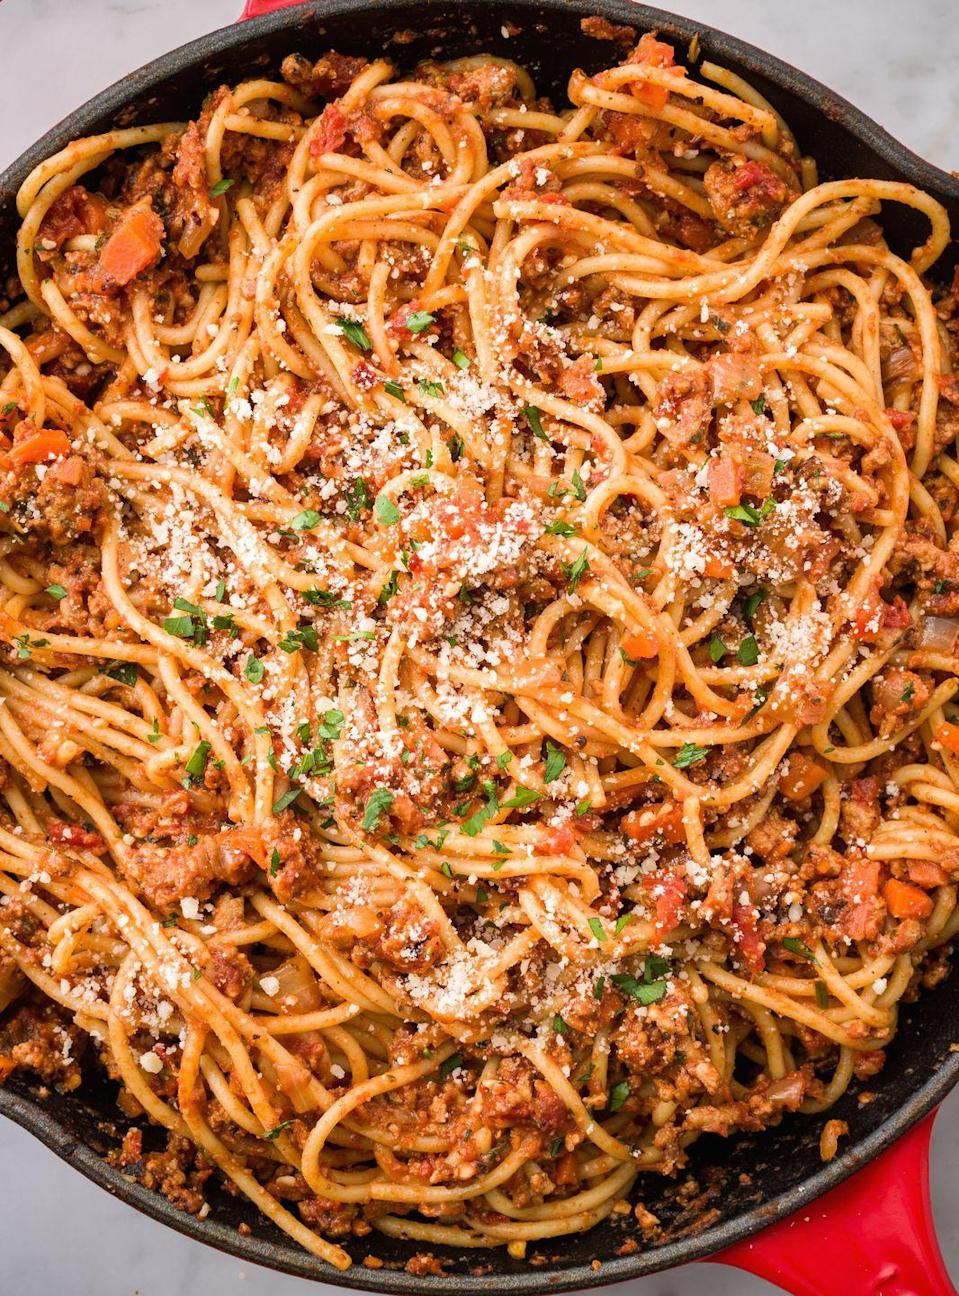 """<p>You have no excuse to not make this stupid-easy ragu: Made with ground turkey, white wine, and crushed tomatoes, it's a flavor bomb.</p><p>Get the recipe from <a href=""""https://www.delish.com/cooking/recipe-ideas/recipes/a45776/spaghetti-with-turkey-ragu-recipe/"""" rel=""""nofollow noopener"""" target=""""_blank"""" data-ylk=""""slk:Delish"""" class=""""link rapid-noclick-resp"""">Delish</a>. </p>"""